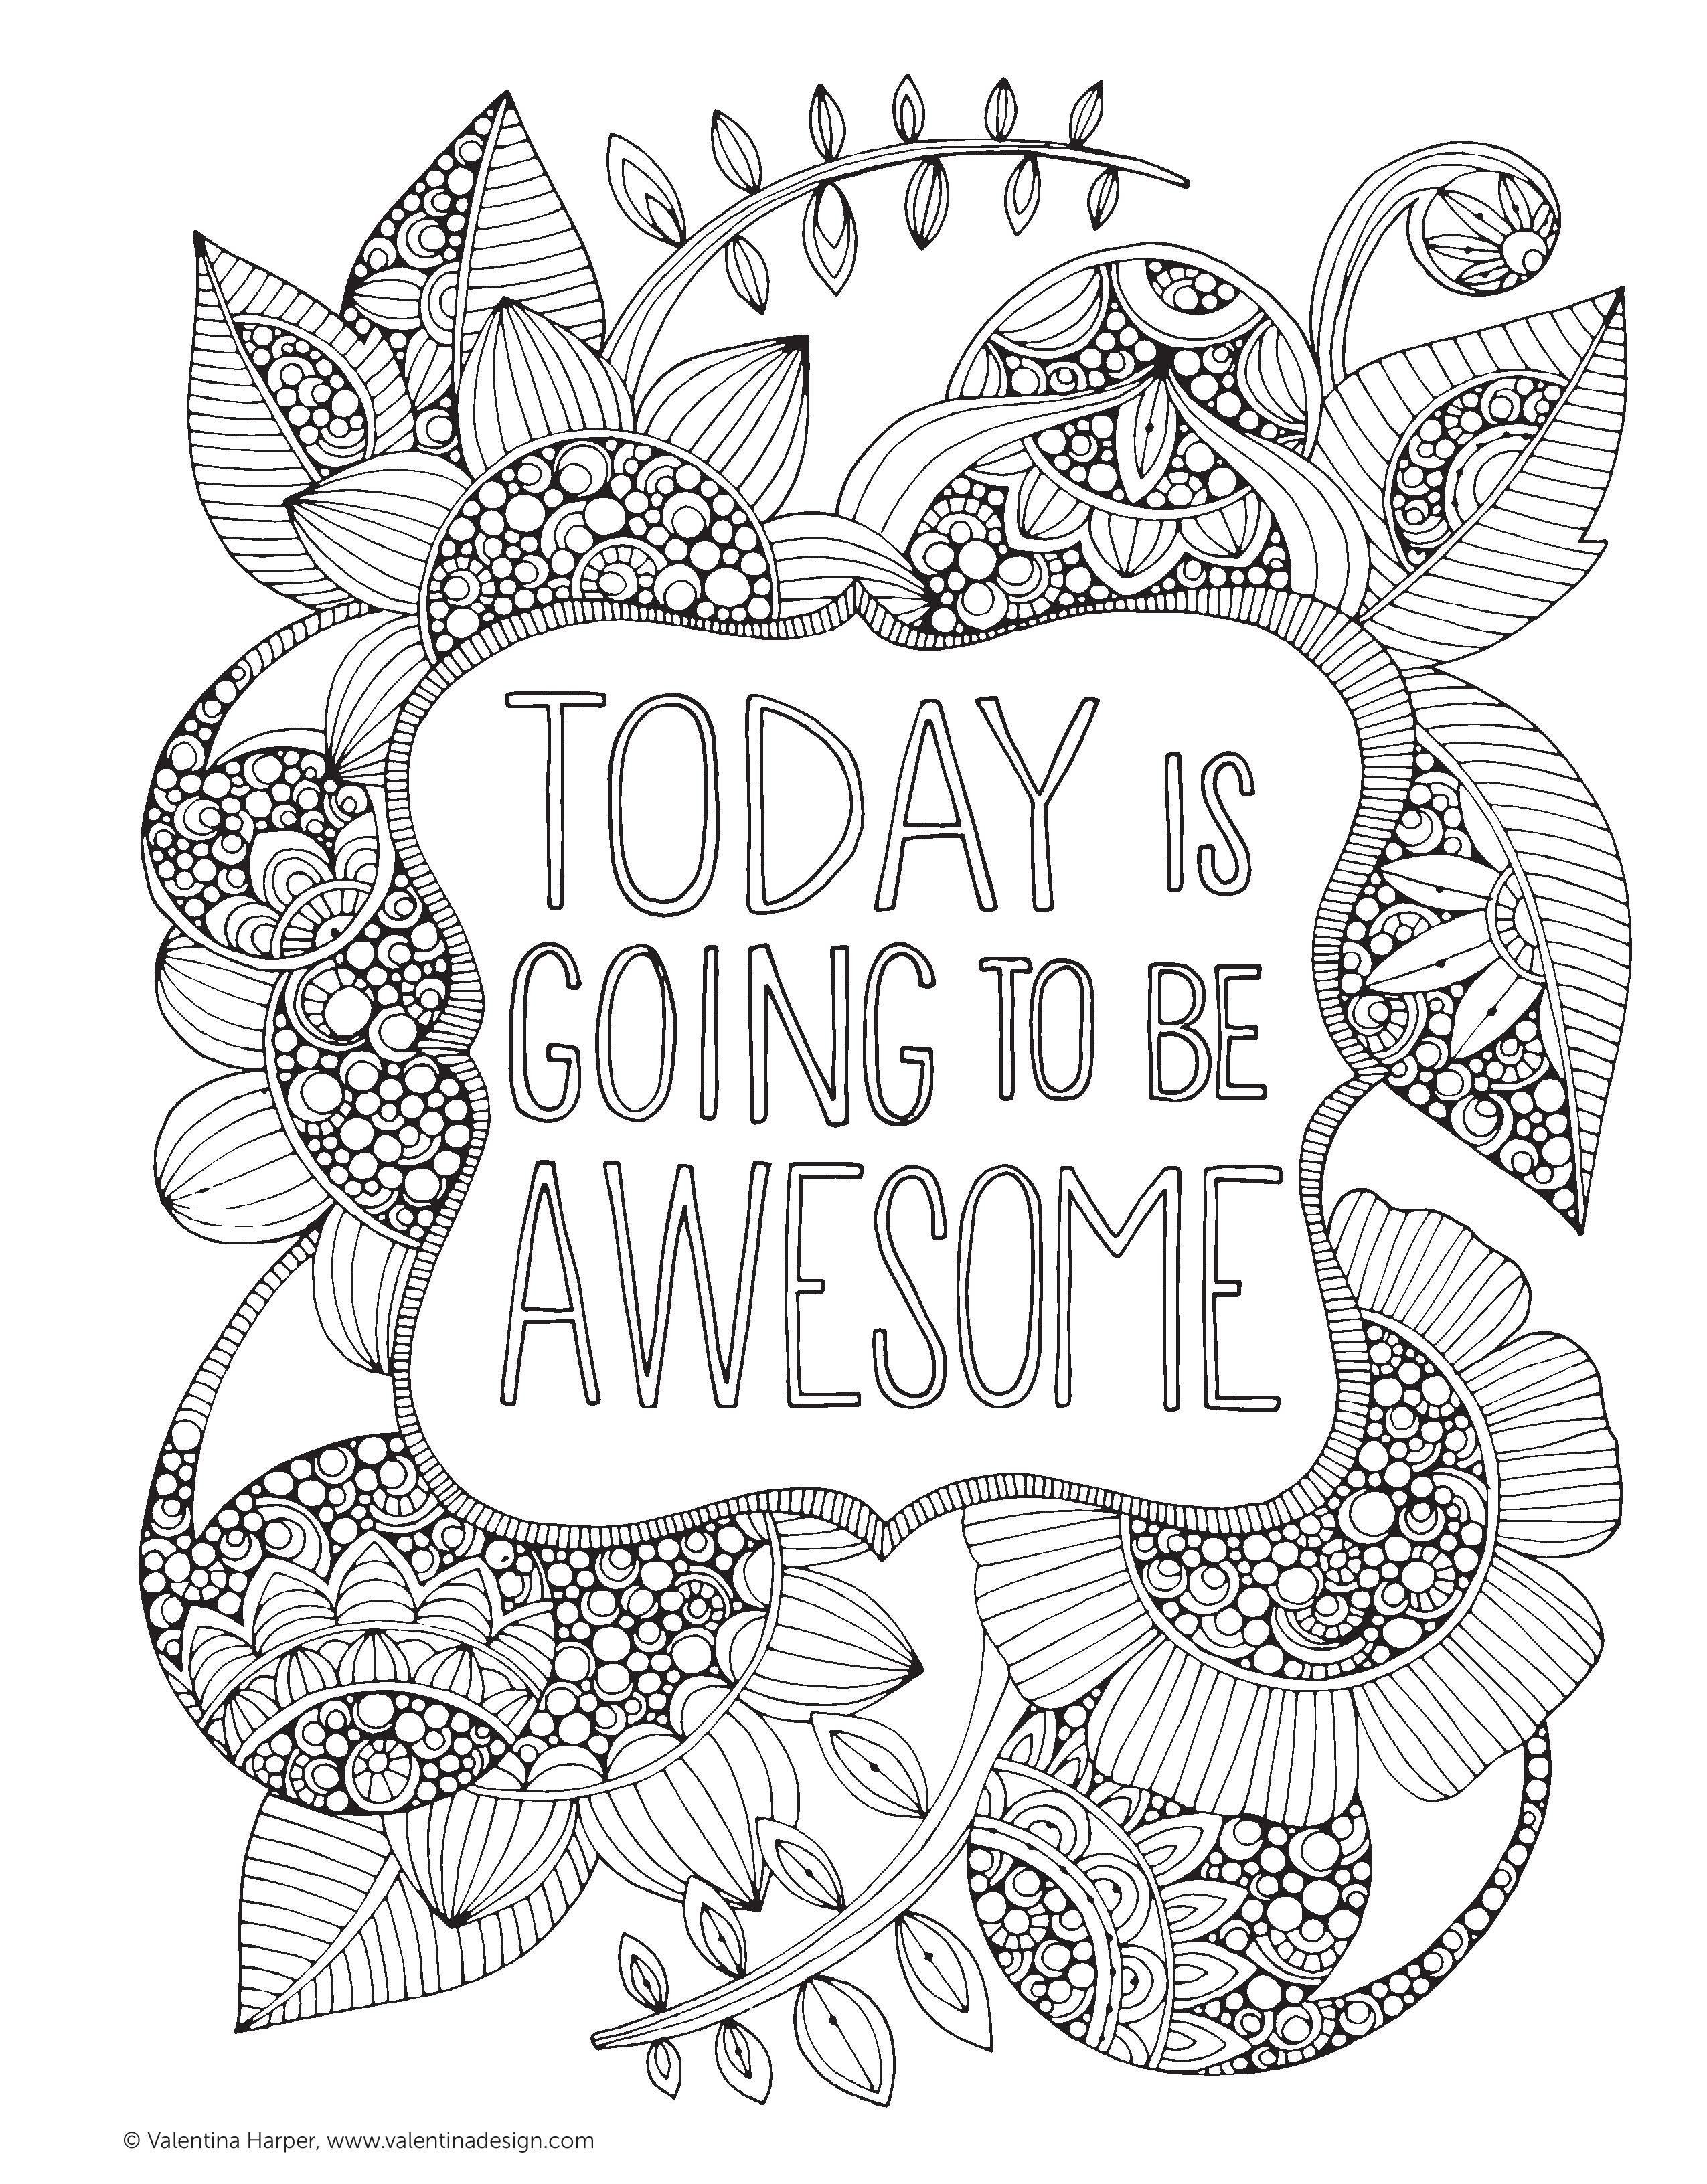 Coloring Ideas : Inspirational Quotes Coloring Pages Positivelegant - Free Printable Inspirational Coloring Pages